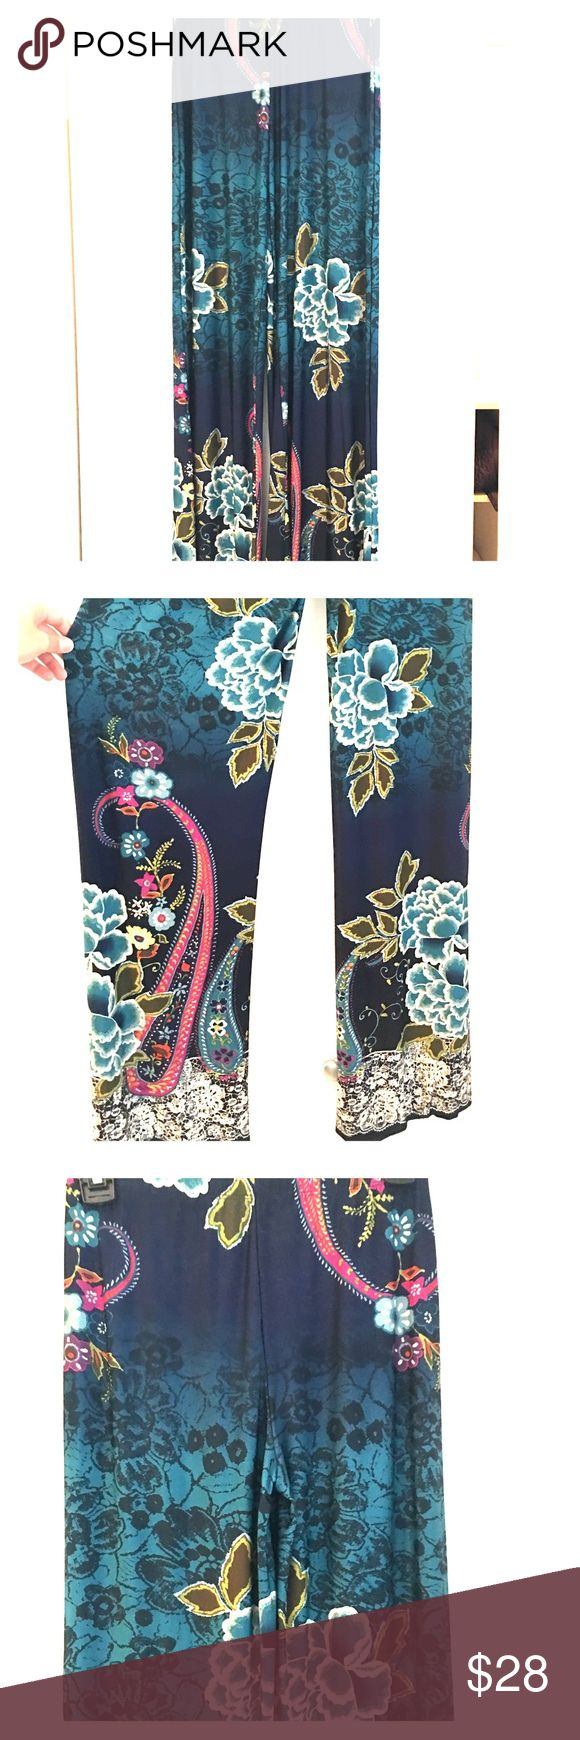 Wide Leg Palazzo Pants! Wide leg Palazzo pants with floral design. Elastic waistband. Great condition. Will Ship Fast! No Trades Please! Reasonable Offers Accepted! 👍🏻 Pants Wide Leg